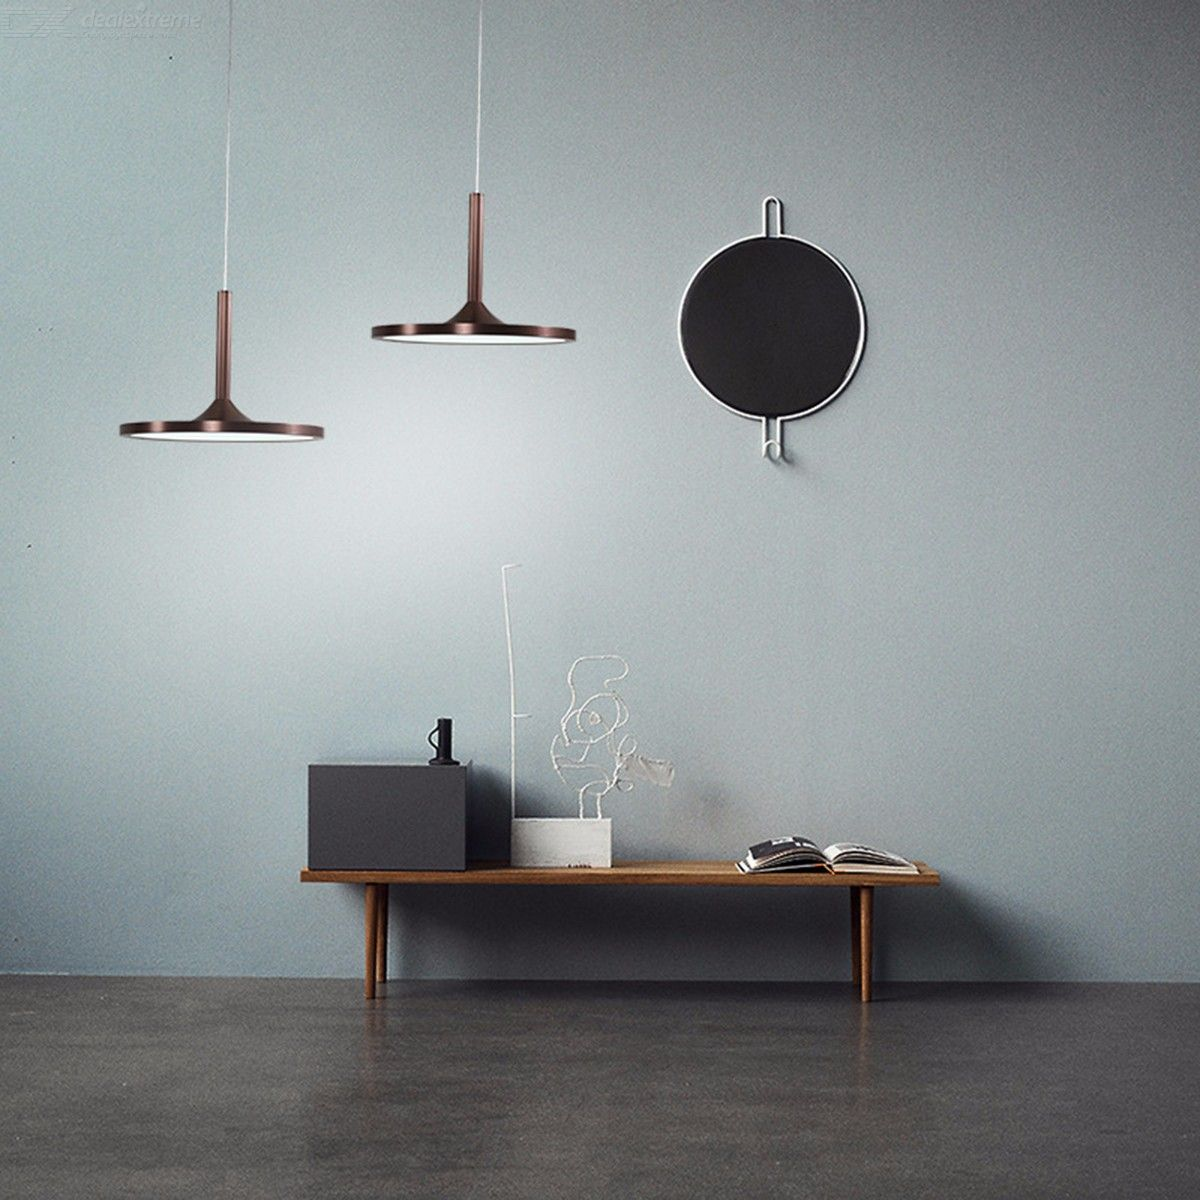 Lampe Kreativ Nordic Simple Cafe Pendant Light Living Room Restaurant Creative Bar Saucer Lamp